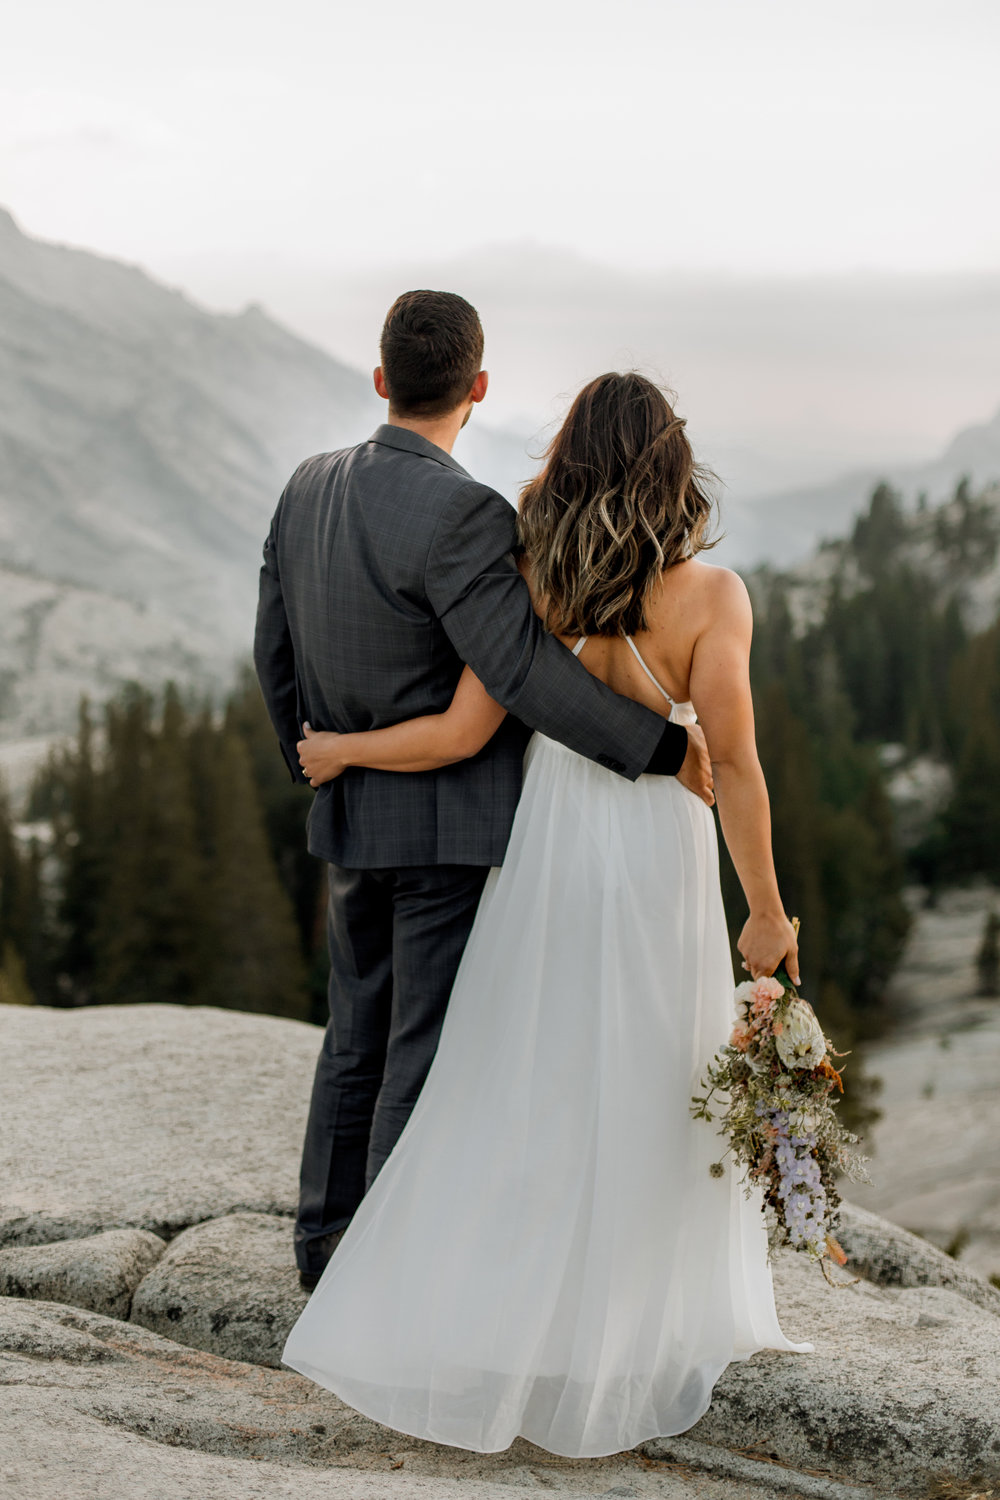 nicole-daacke-photography-yosemite-national-park-fall-elopement-adventurous-free-spirit-boho-bohemian-elopement-olmsted-point-yosemite-california-elope-adventure-elopement-photographer-39.jpg